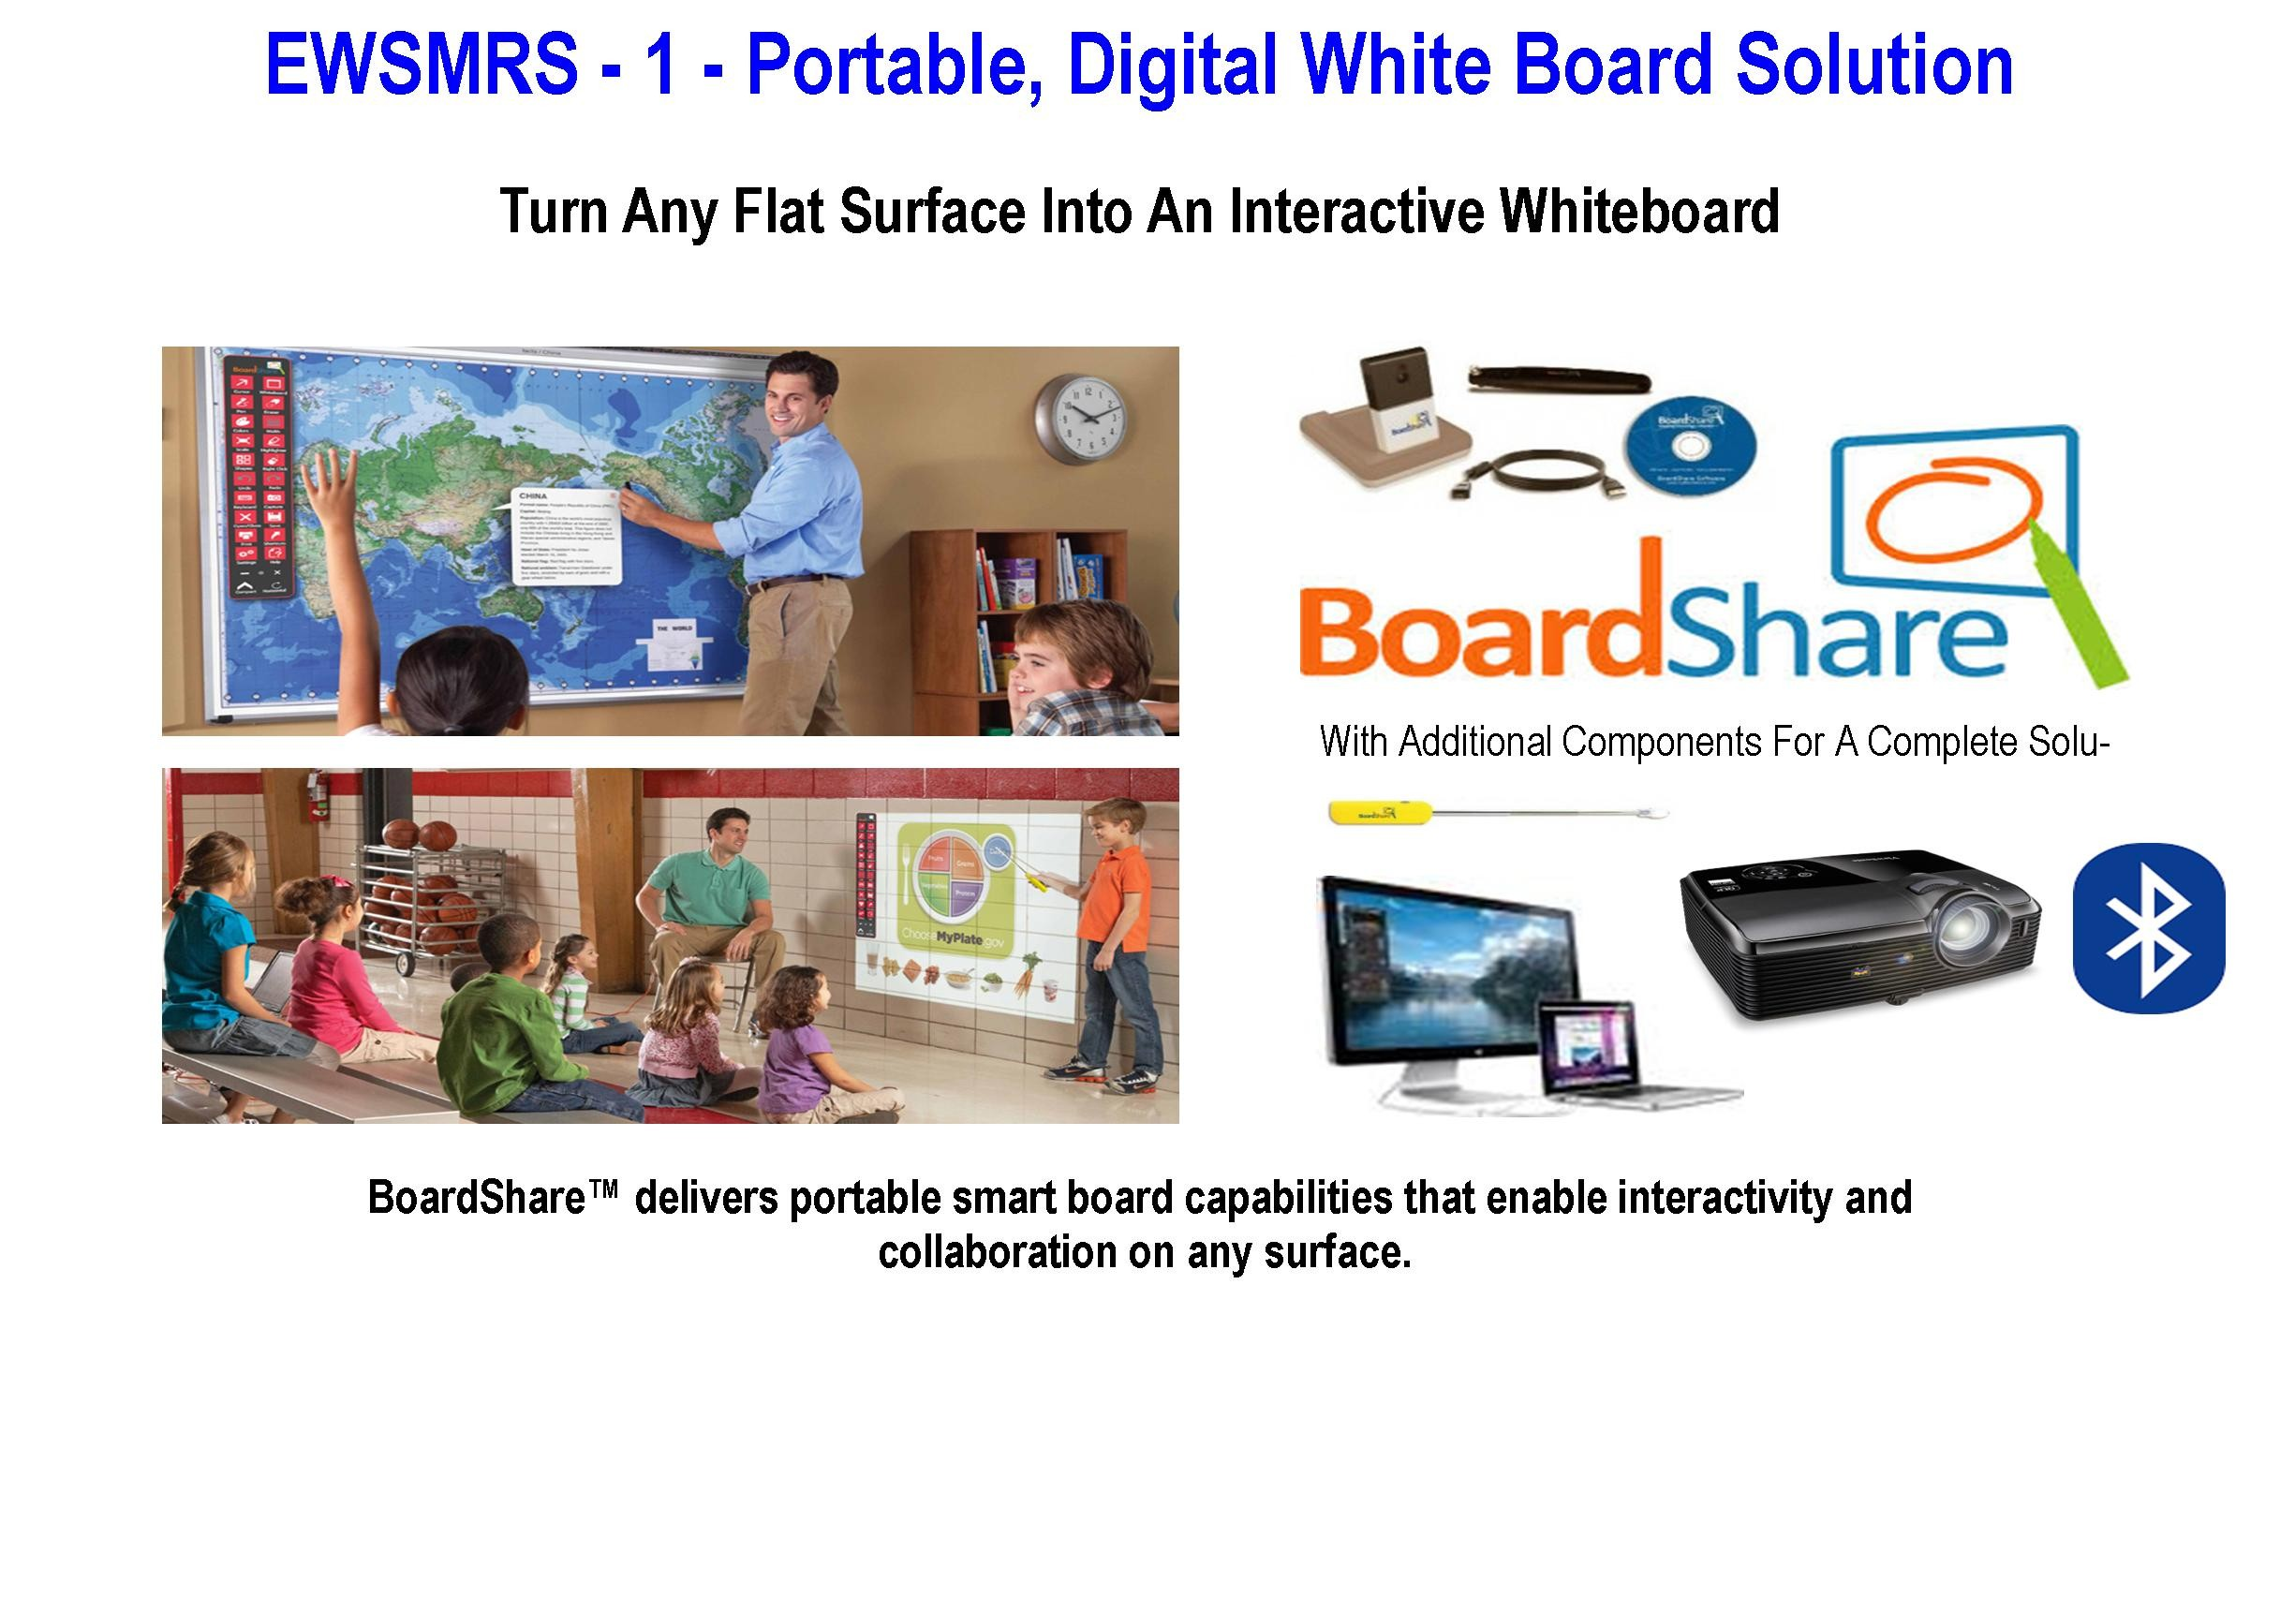 EWSMRS - 1 - Portable Digital White Board Solutions